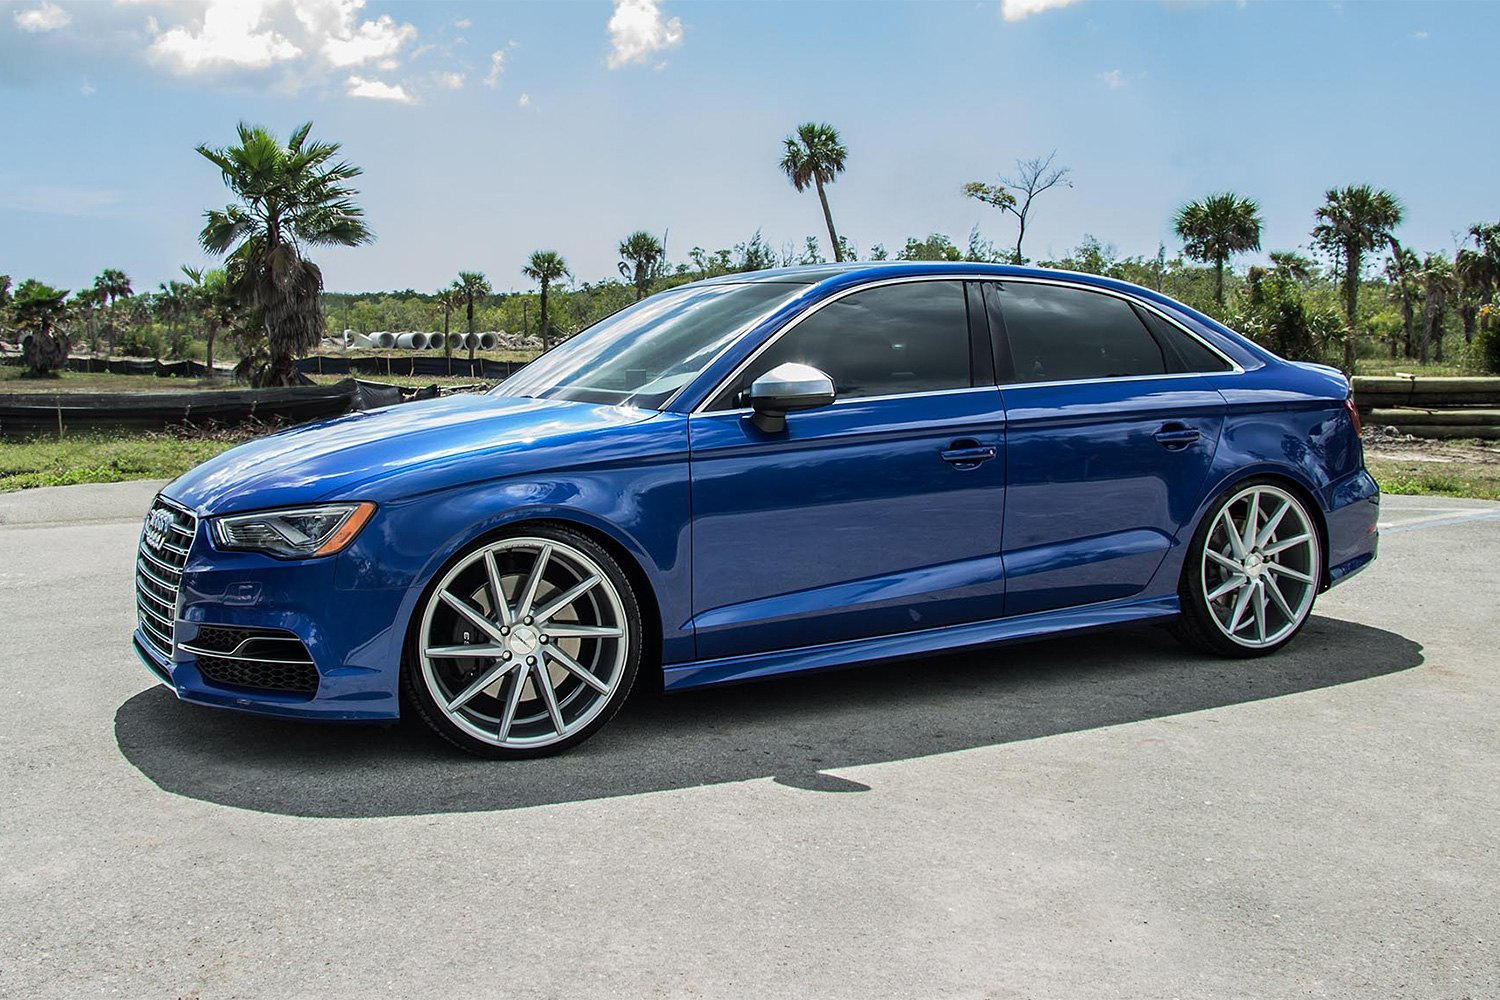 Vossen 174 Cvt Wheels Gloss Silver Rims